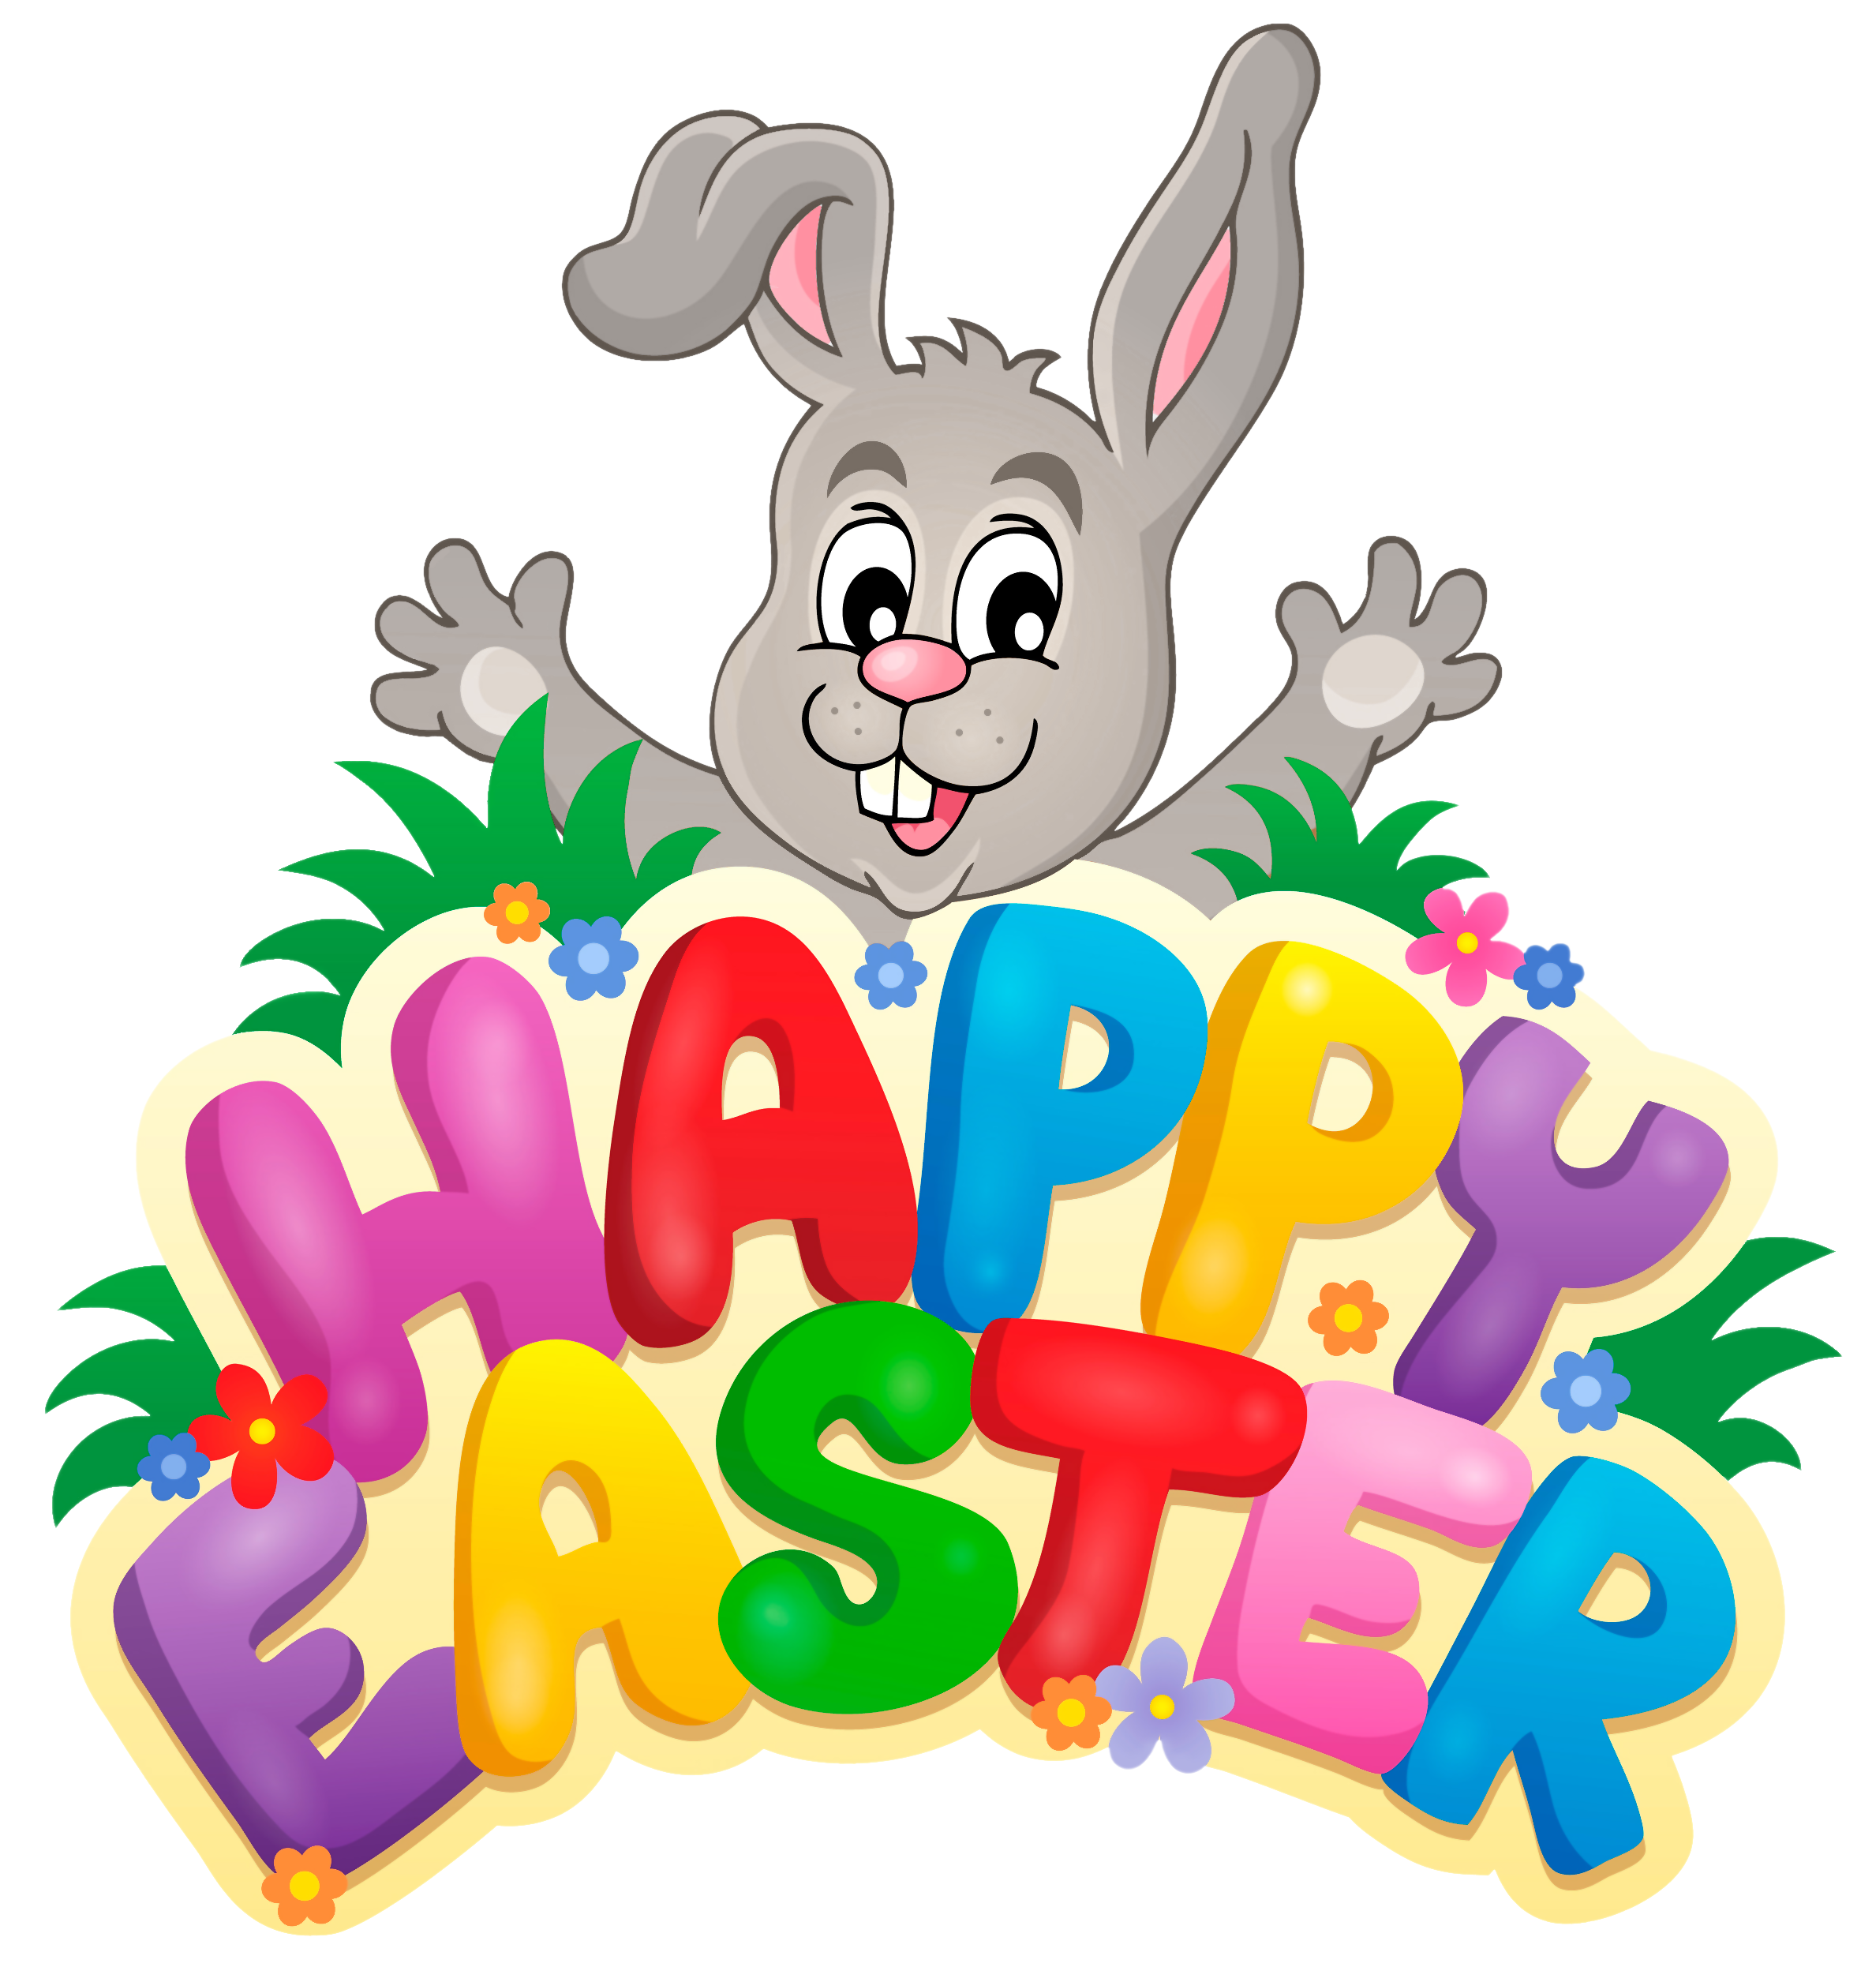 Conflict clipart meeting. Transparent happy easter with